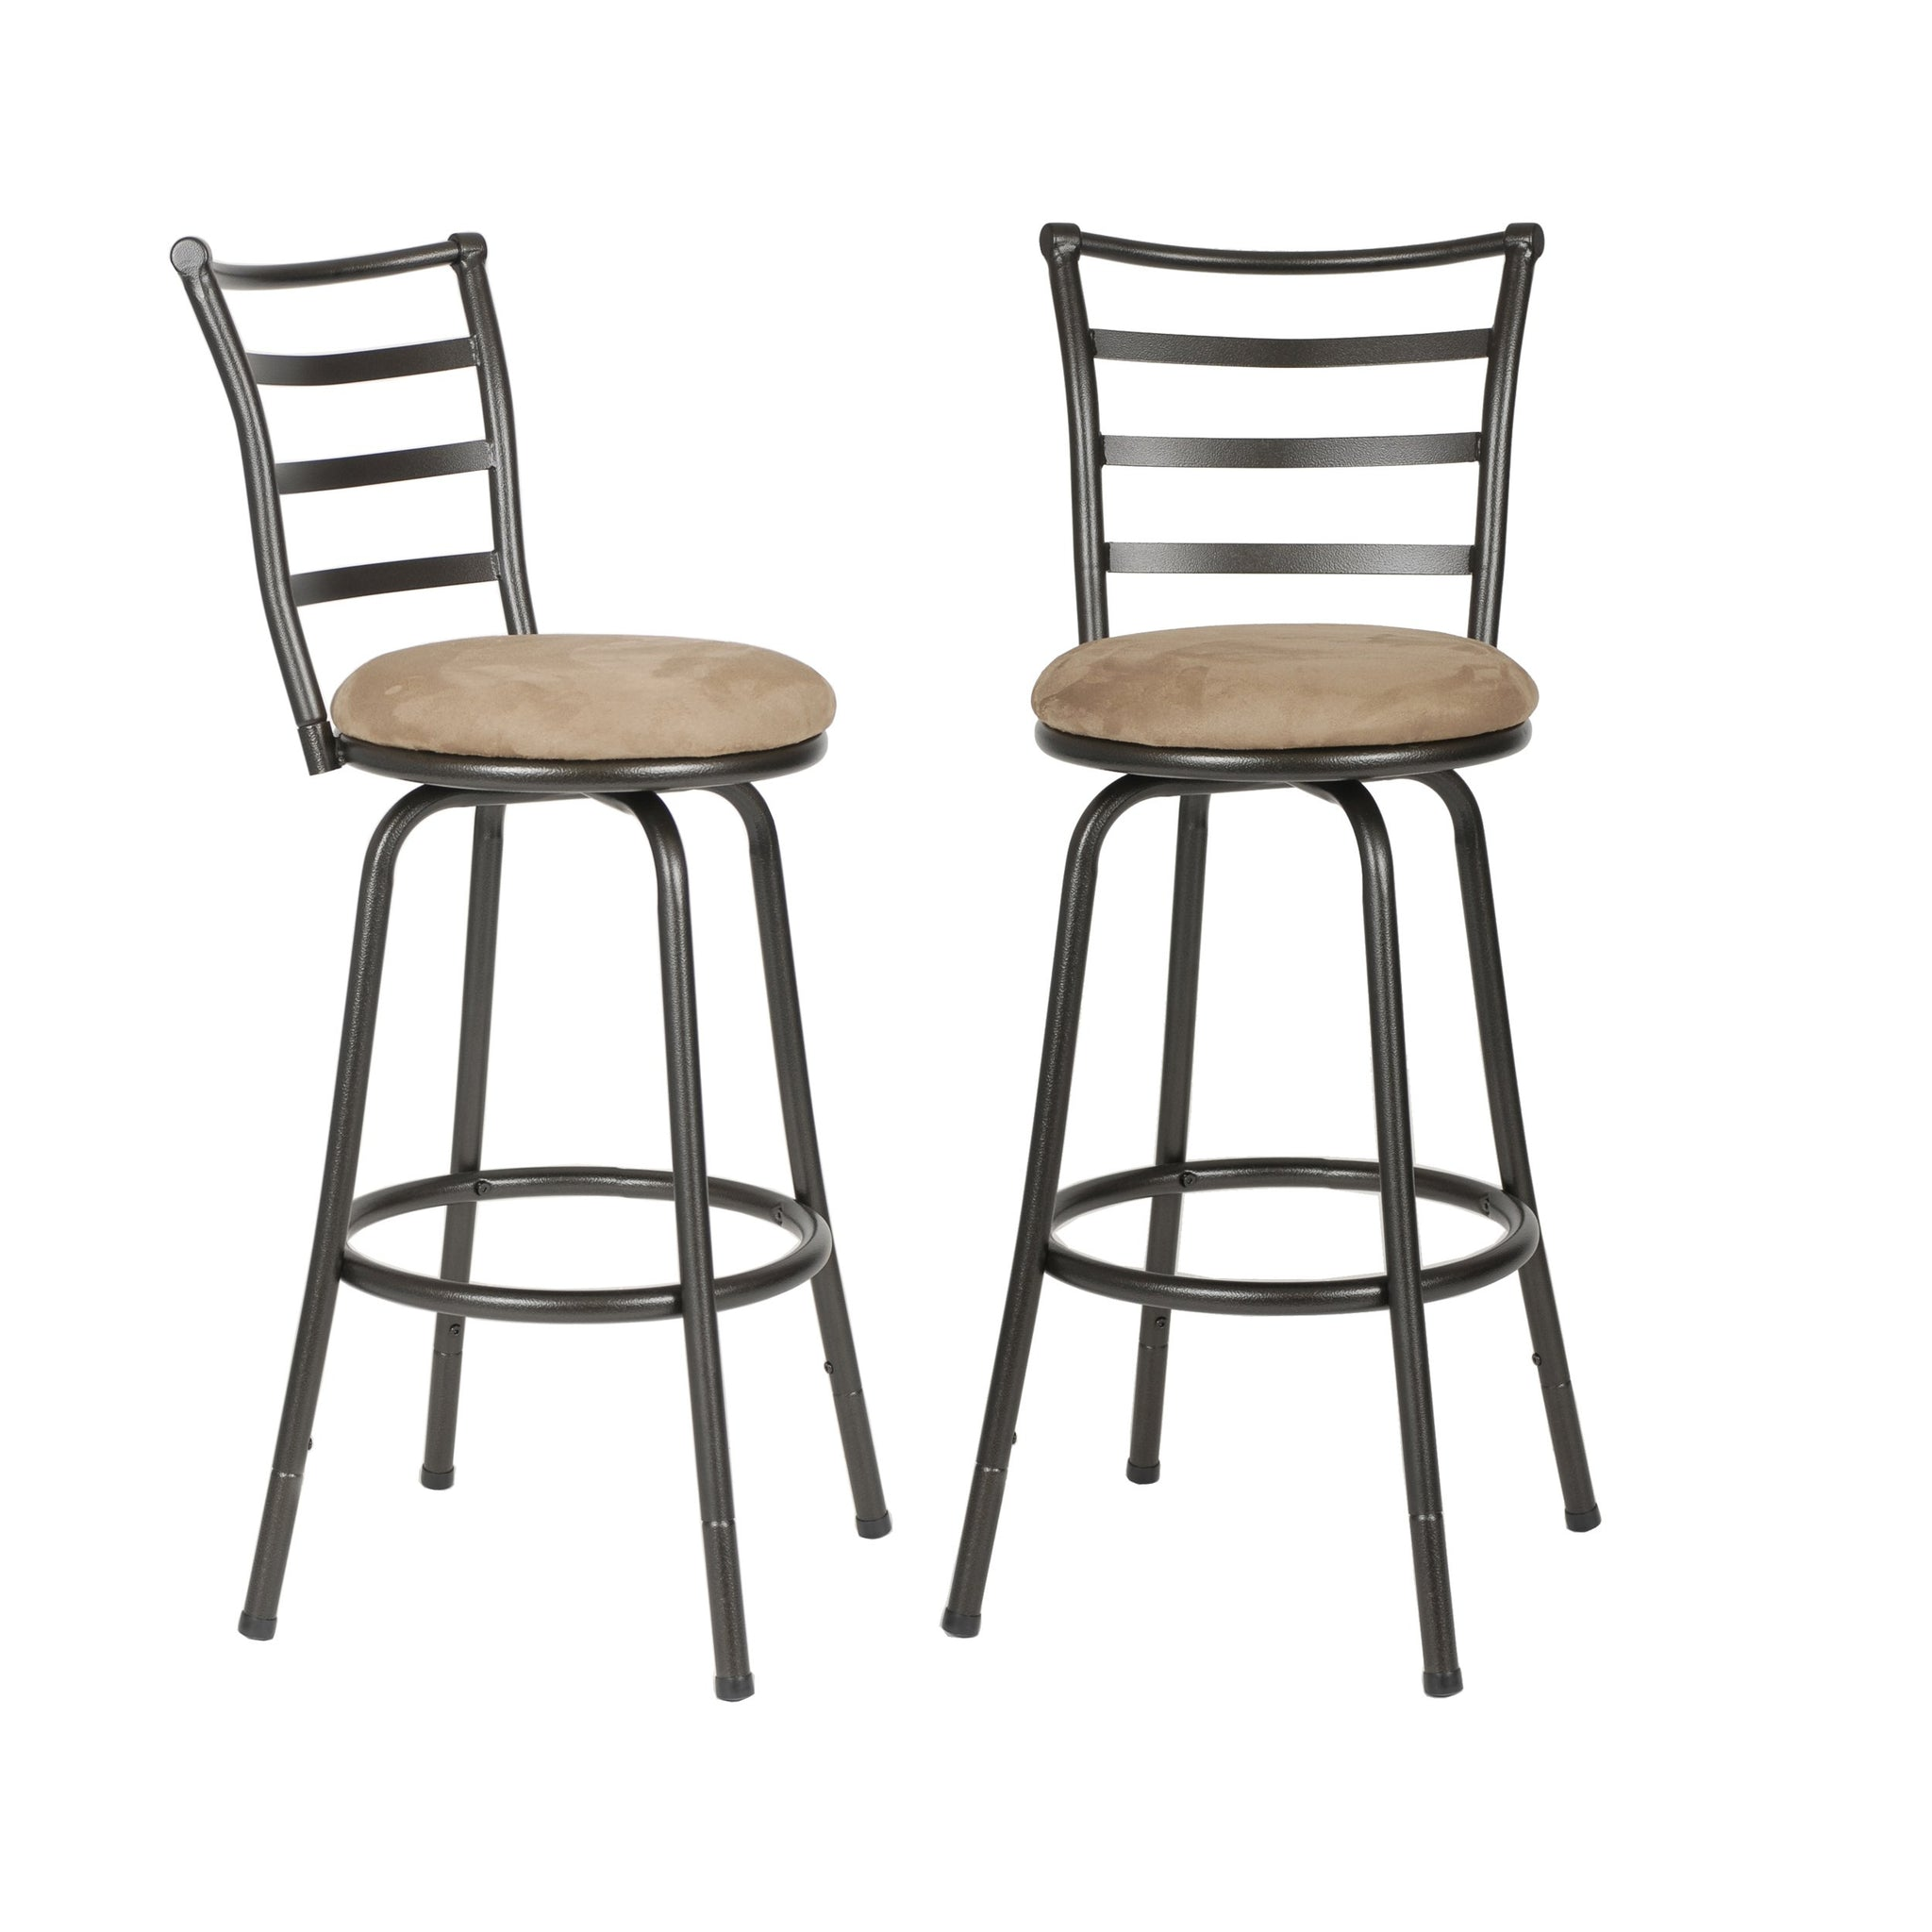 Round Seat Bar/ Counter Height Adjustable Metal Bar Stools, Set of 2